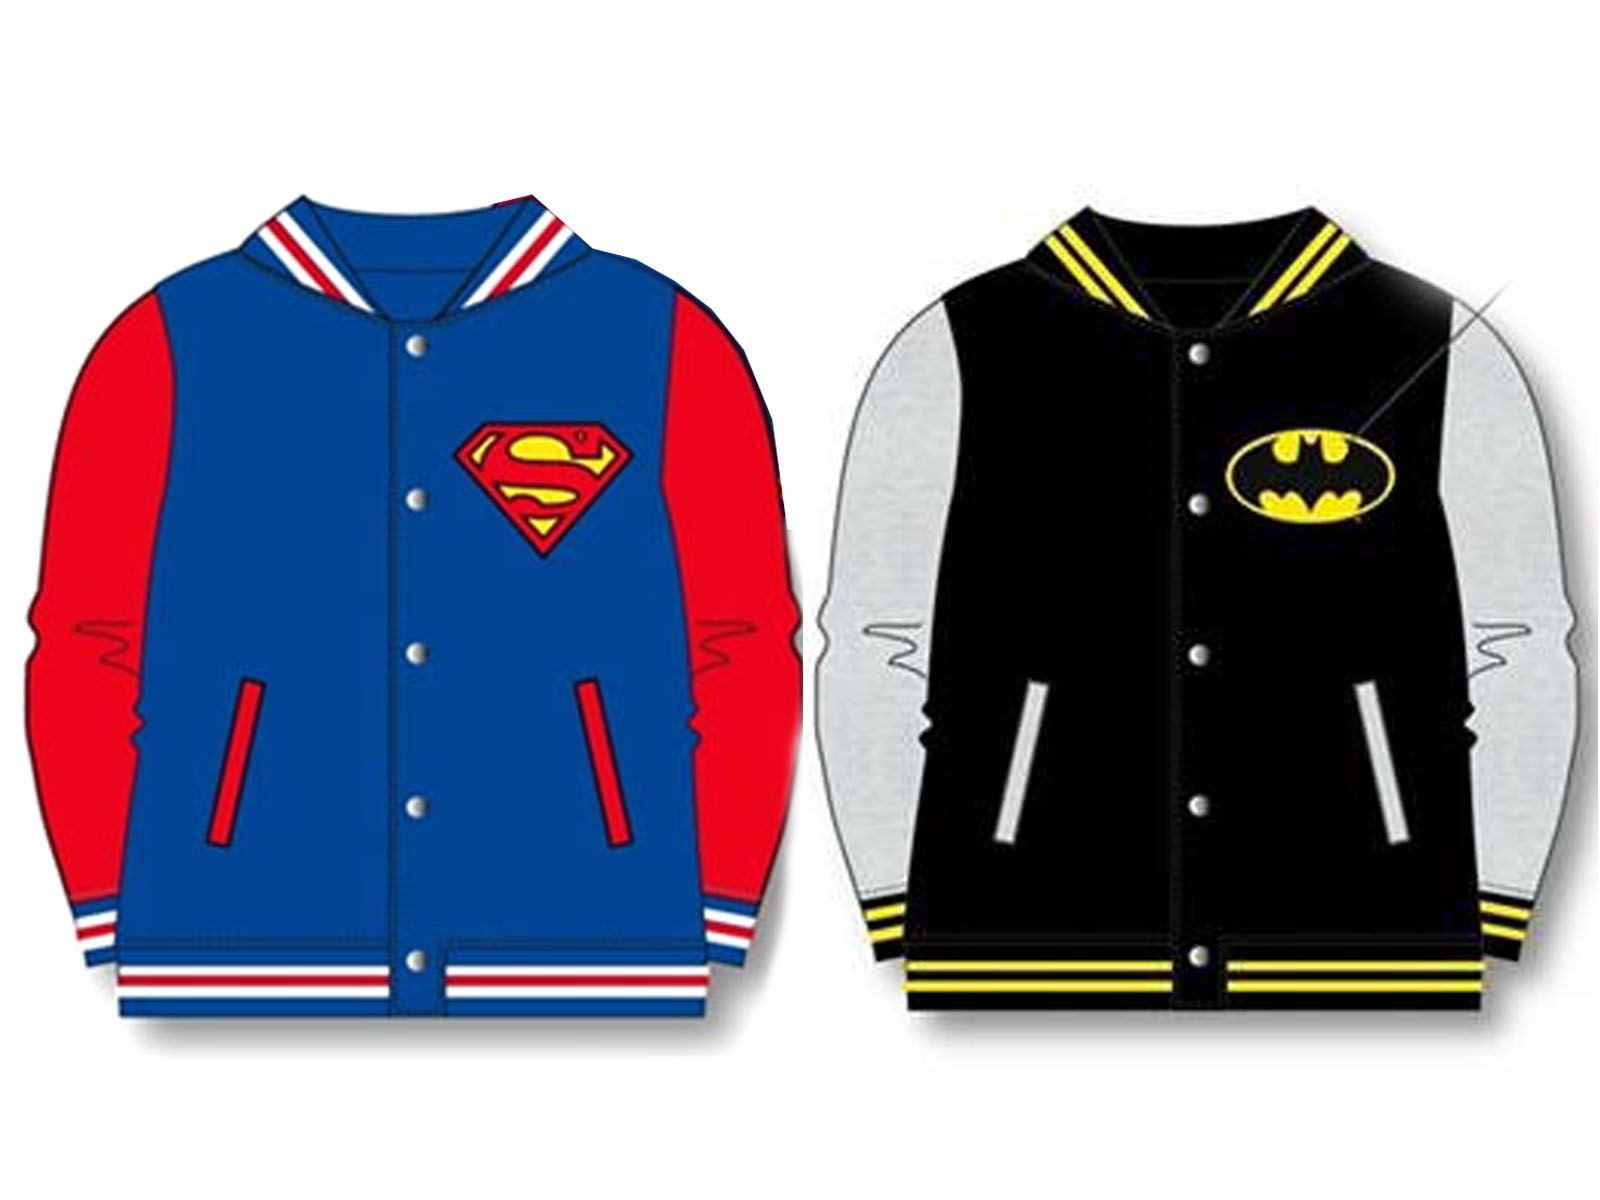 a980988f OFFICIAL KIDS BOYS BATMAN SUPERMAN BASEBALL JACKET COAT VARSITY SUPERHERO